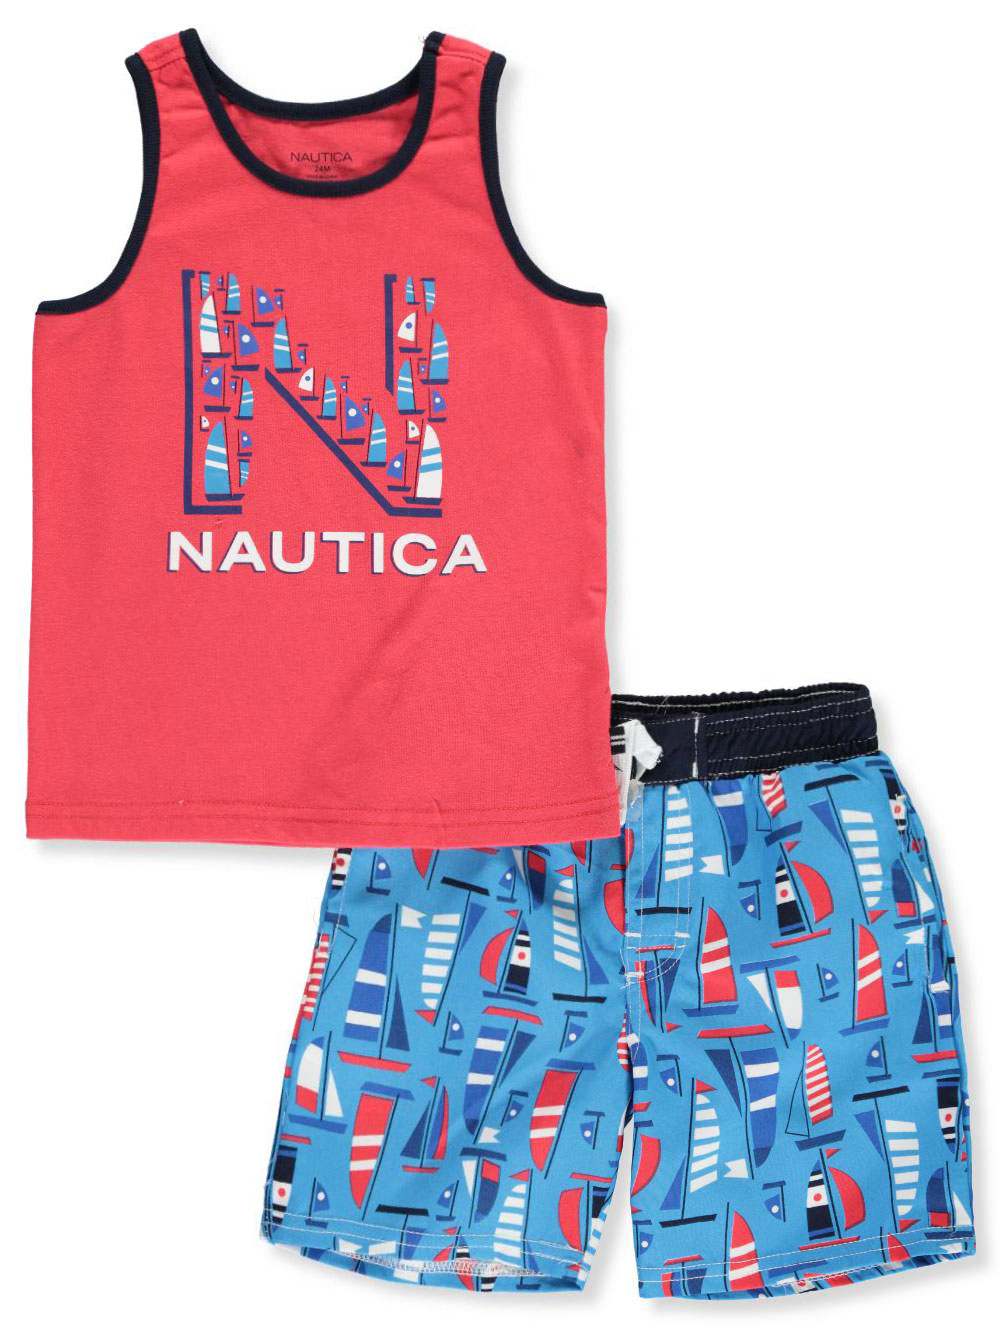 bda5d588a Baby Boys' 2-Piece Swim Set by Nautica in Red/navy from Cookie's Kids